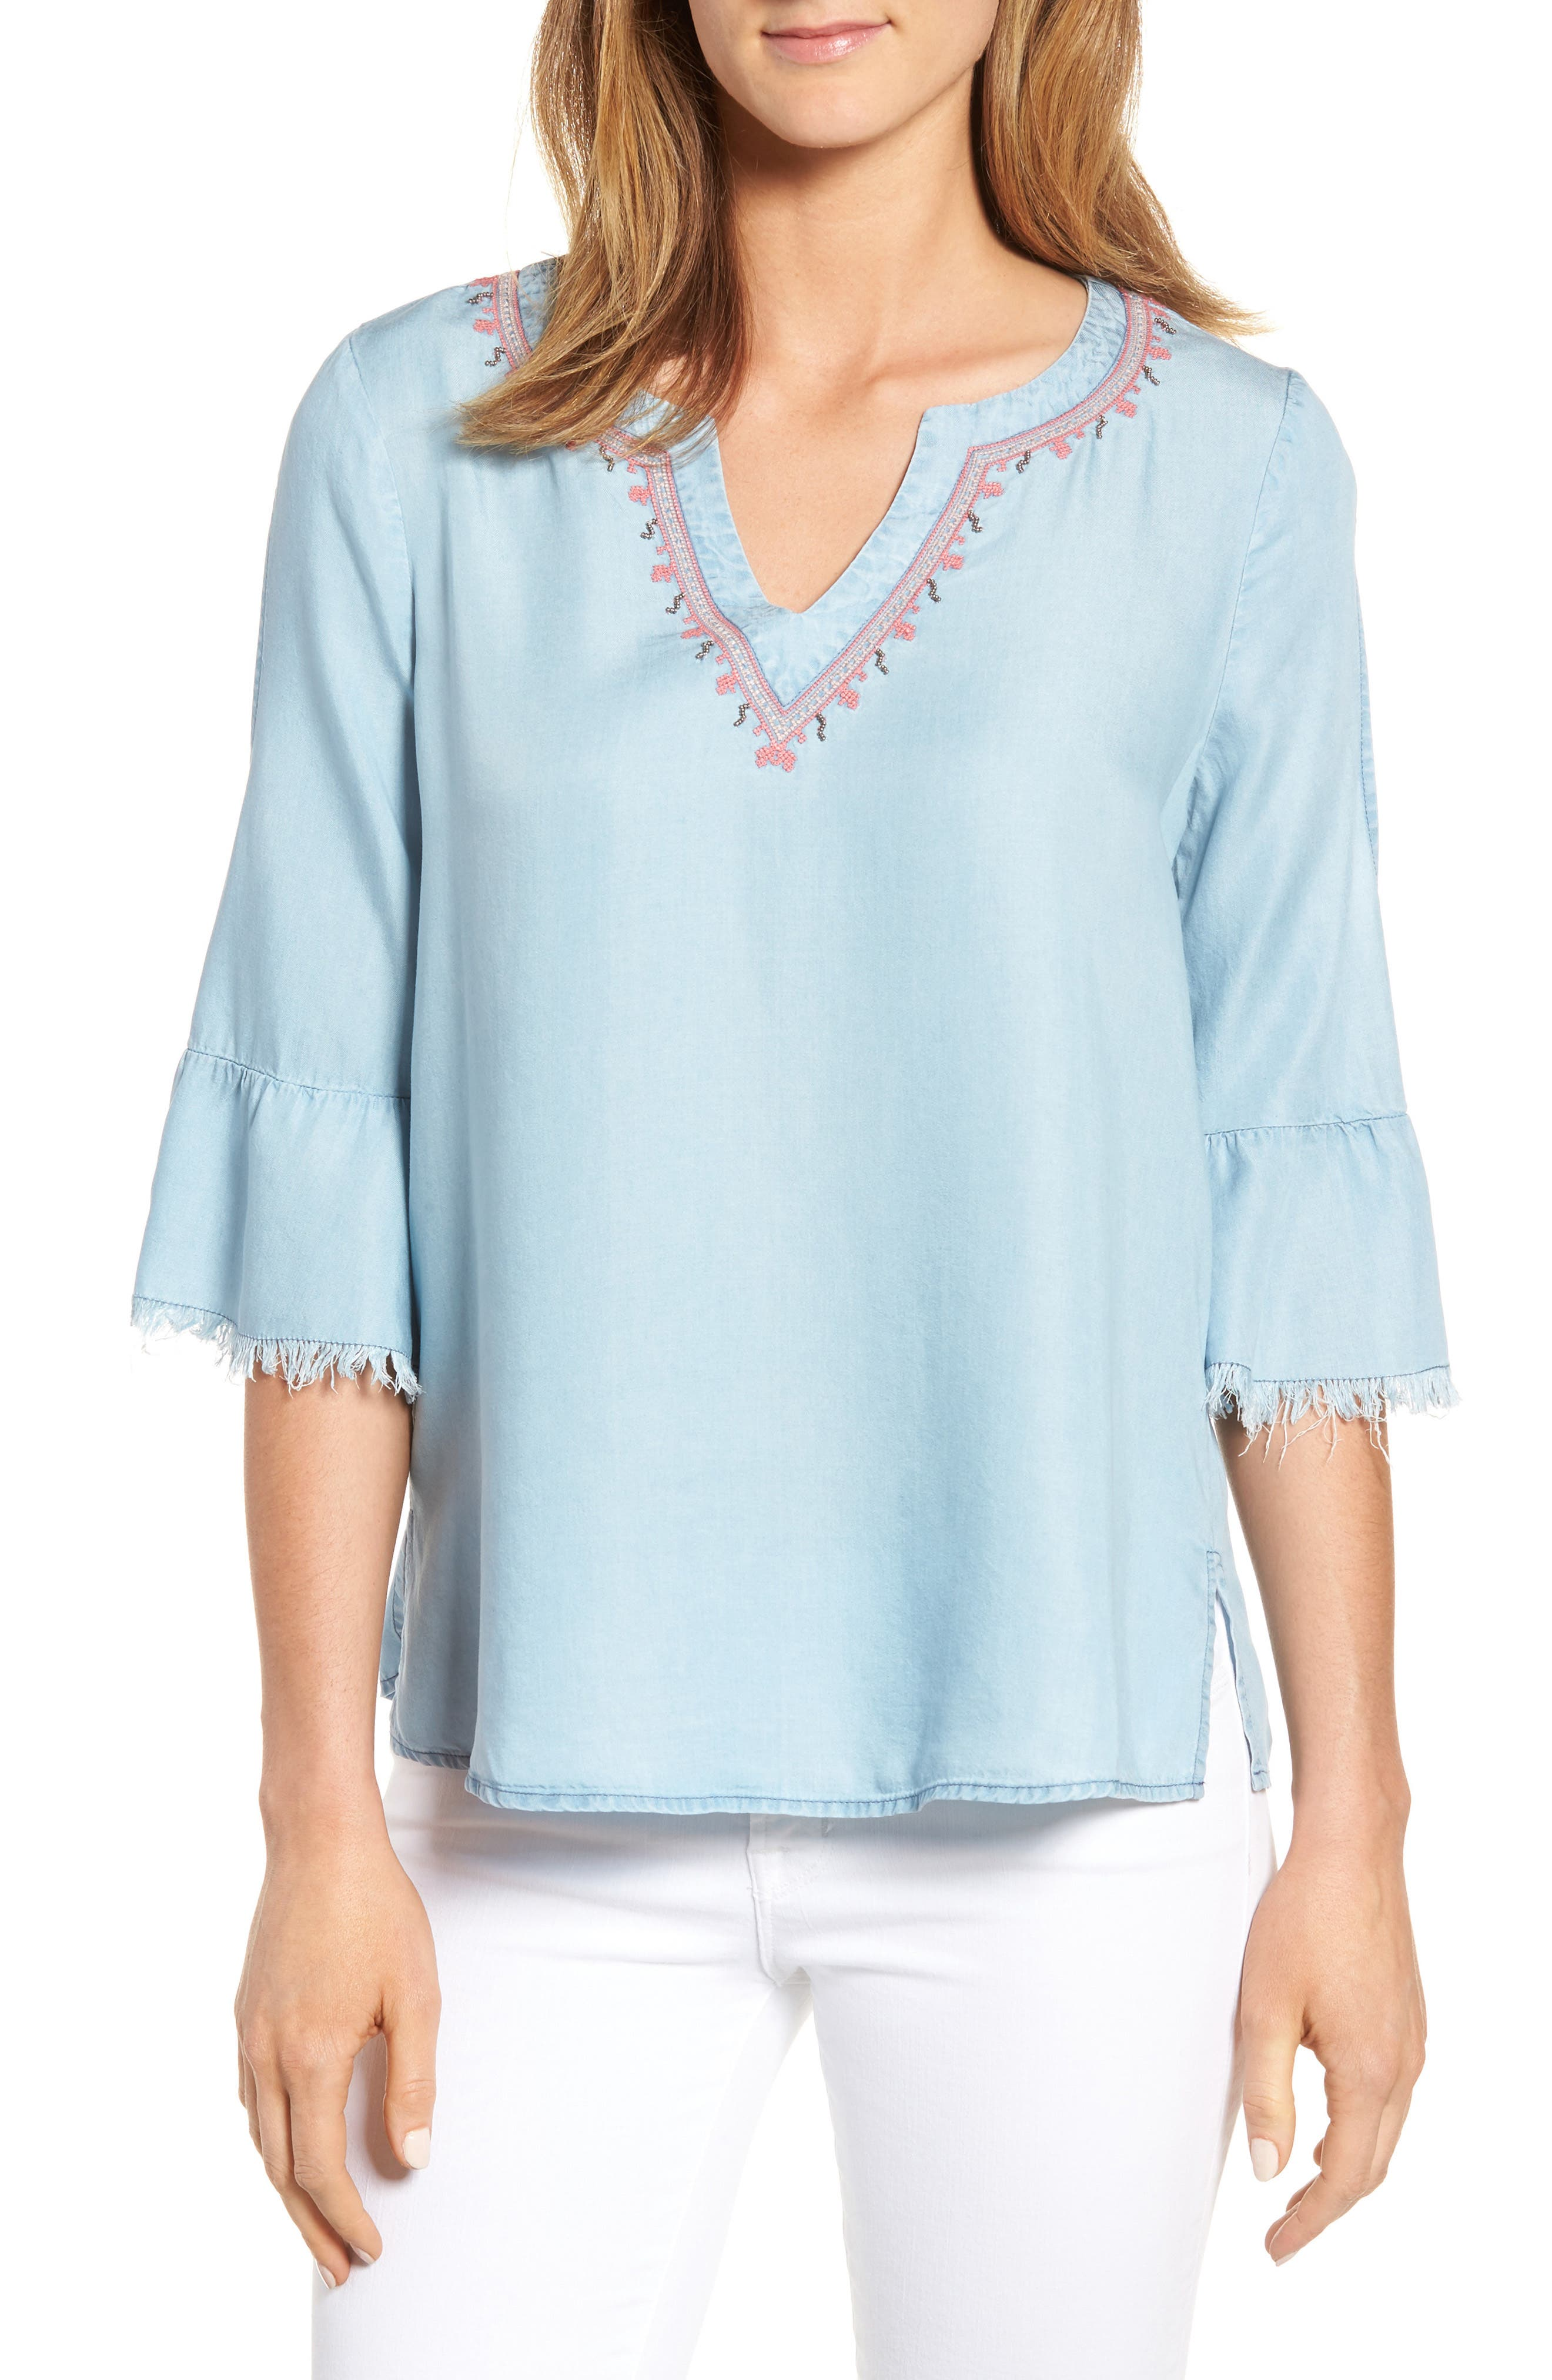 Alternate Image 1 Selected - Billy T Embellished Bell Sleeve Chambray Top